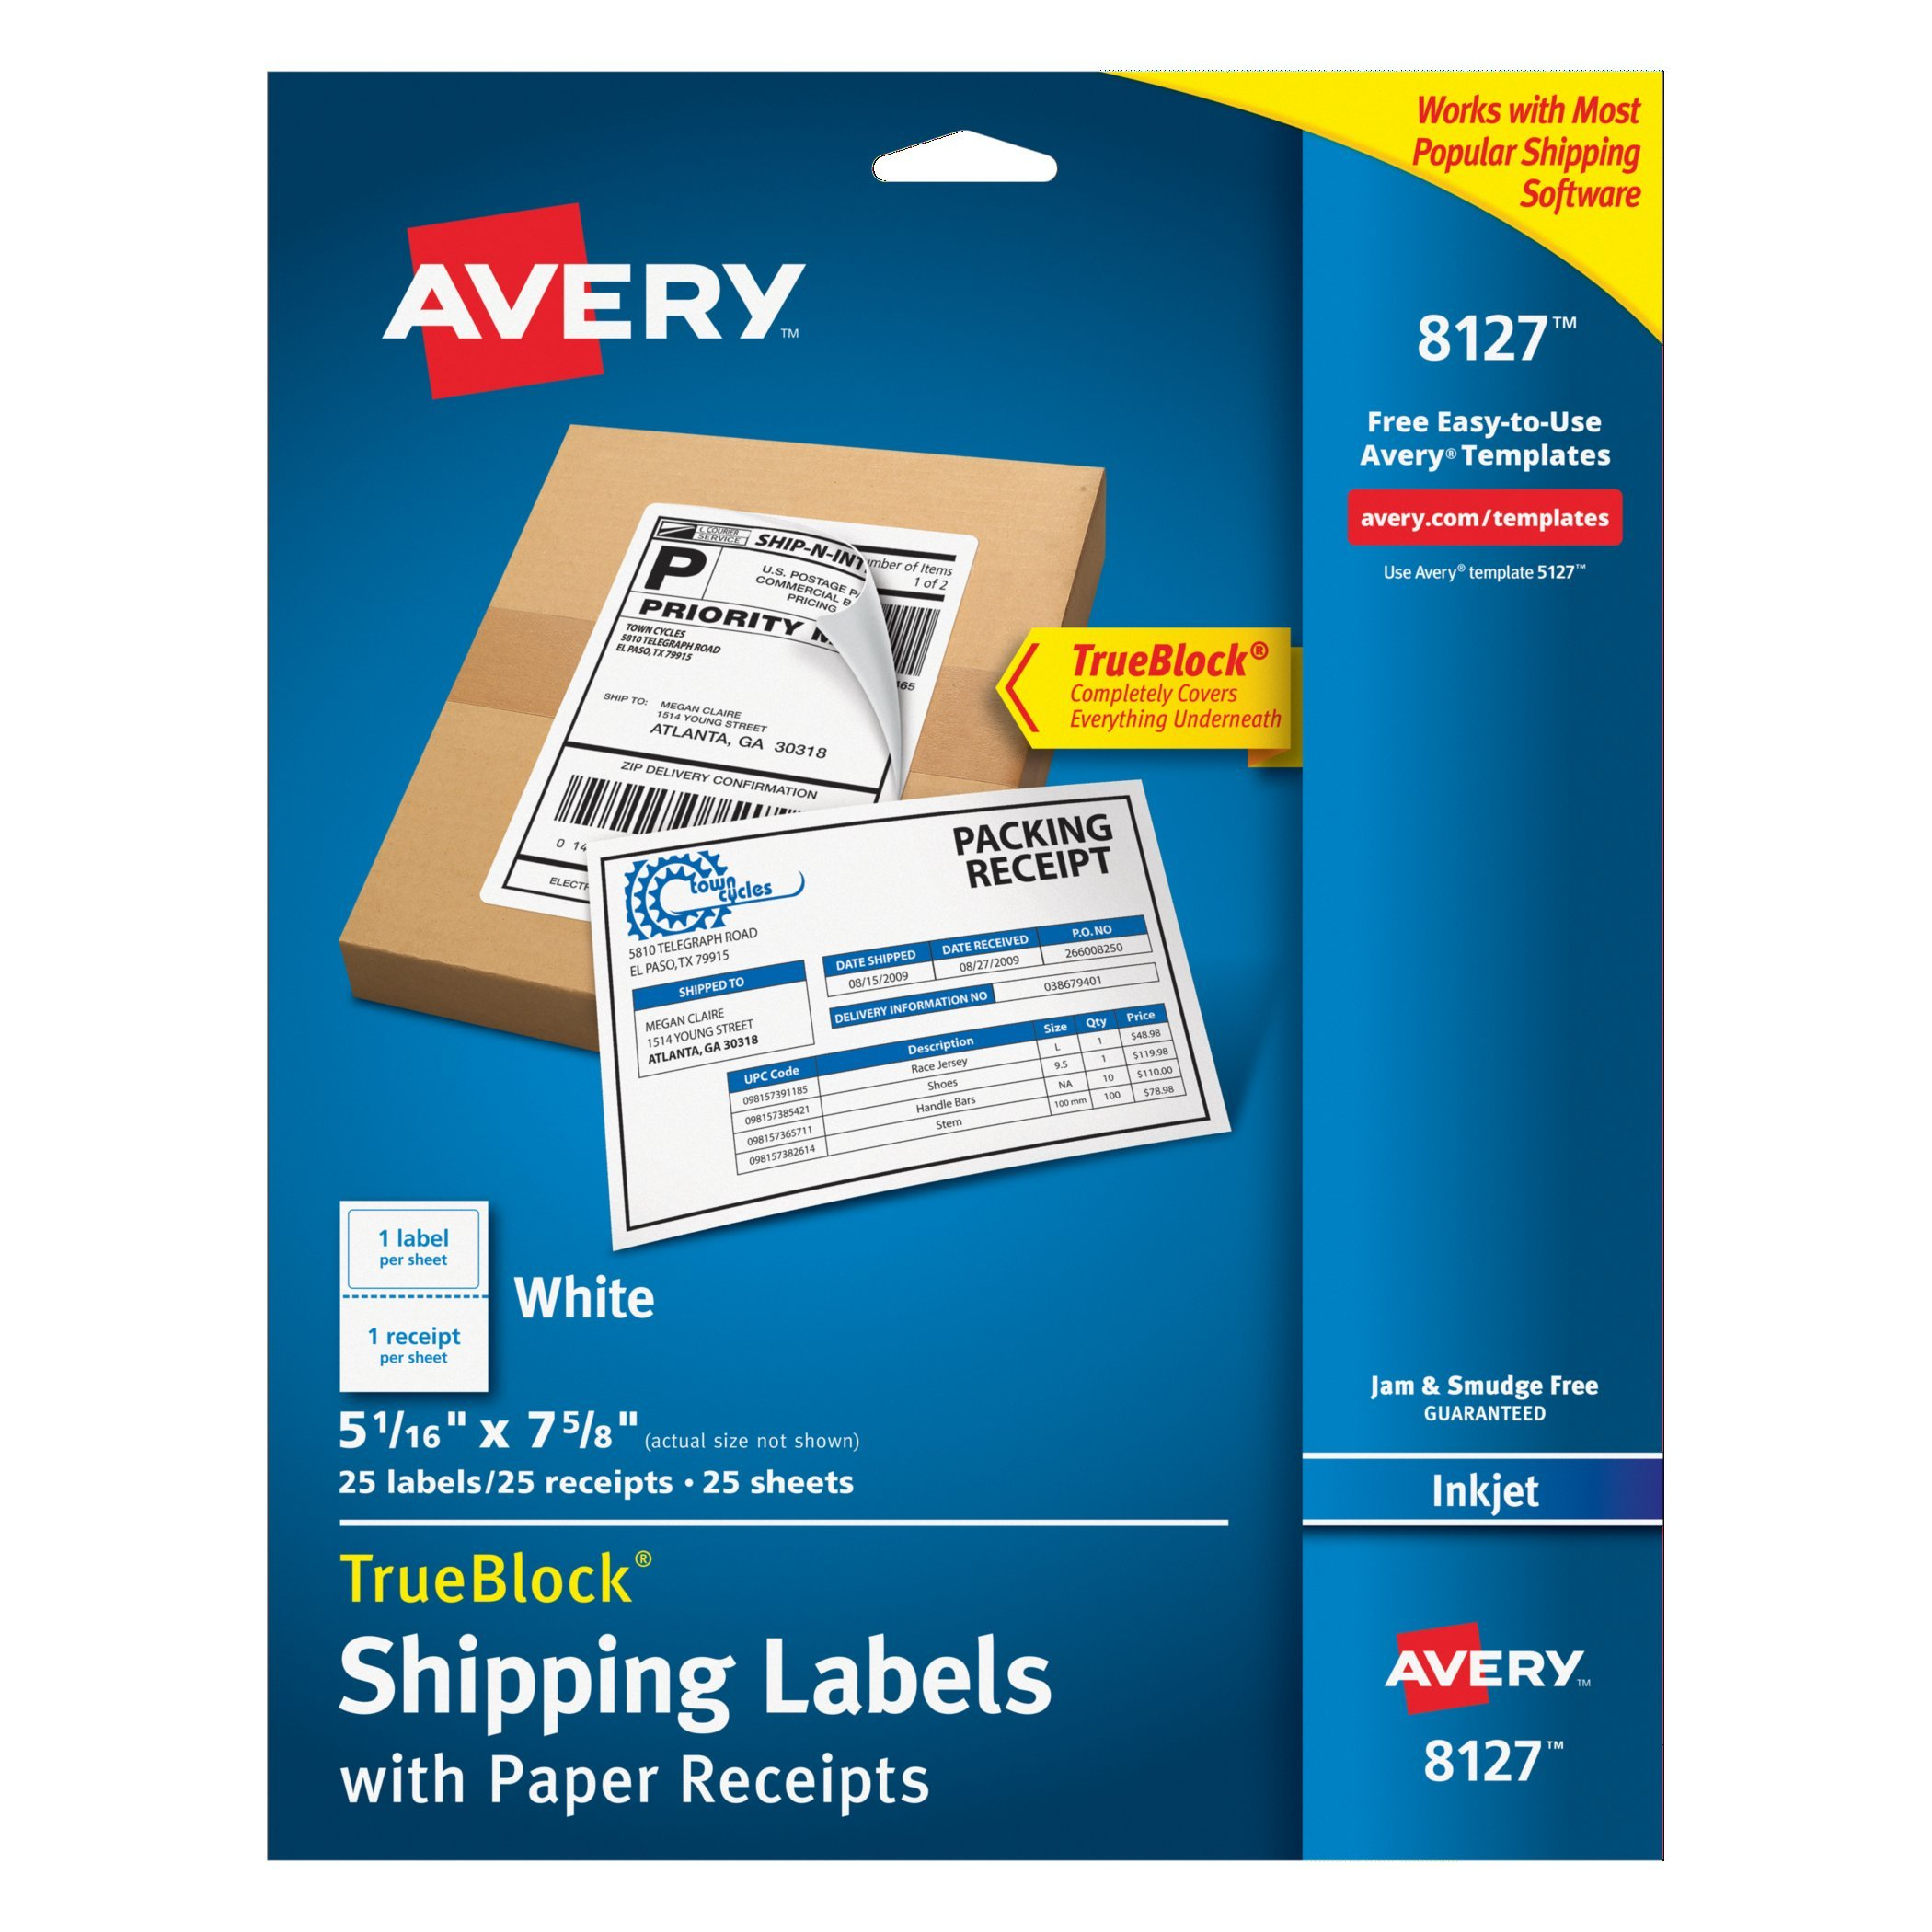 Avery Shipping Labels w/Paper Receipts and TrueBlock Technology for Inkjet Printers 5-1/16'' x 7-5/8'', Pack of 25 (8127)